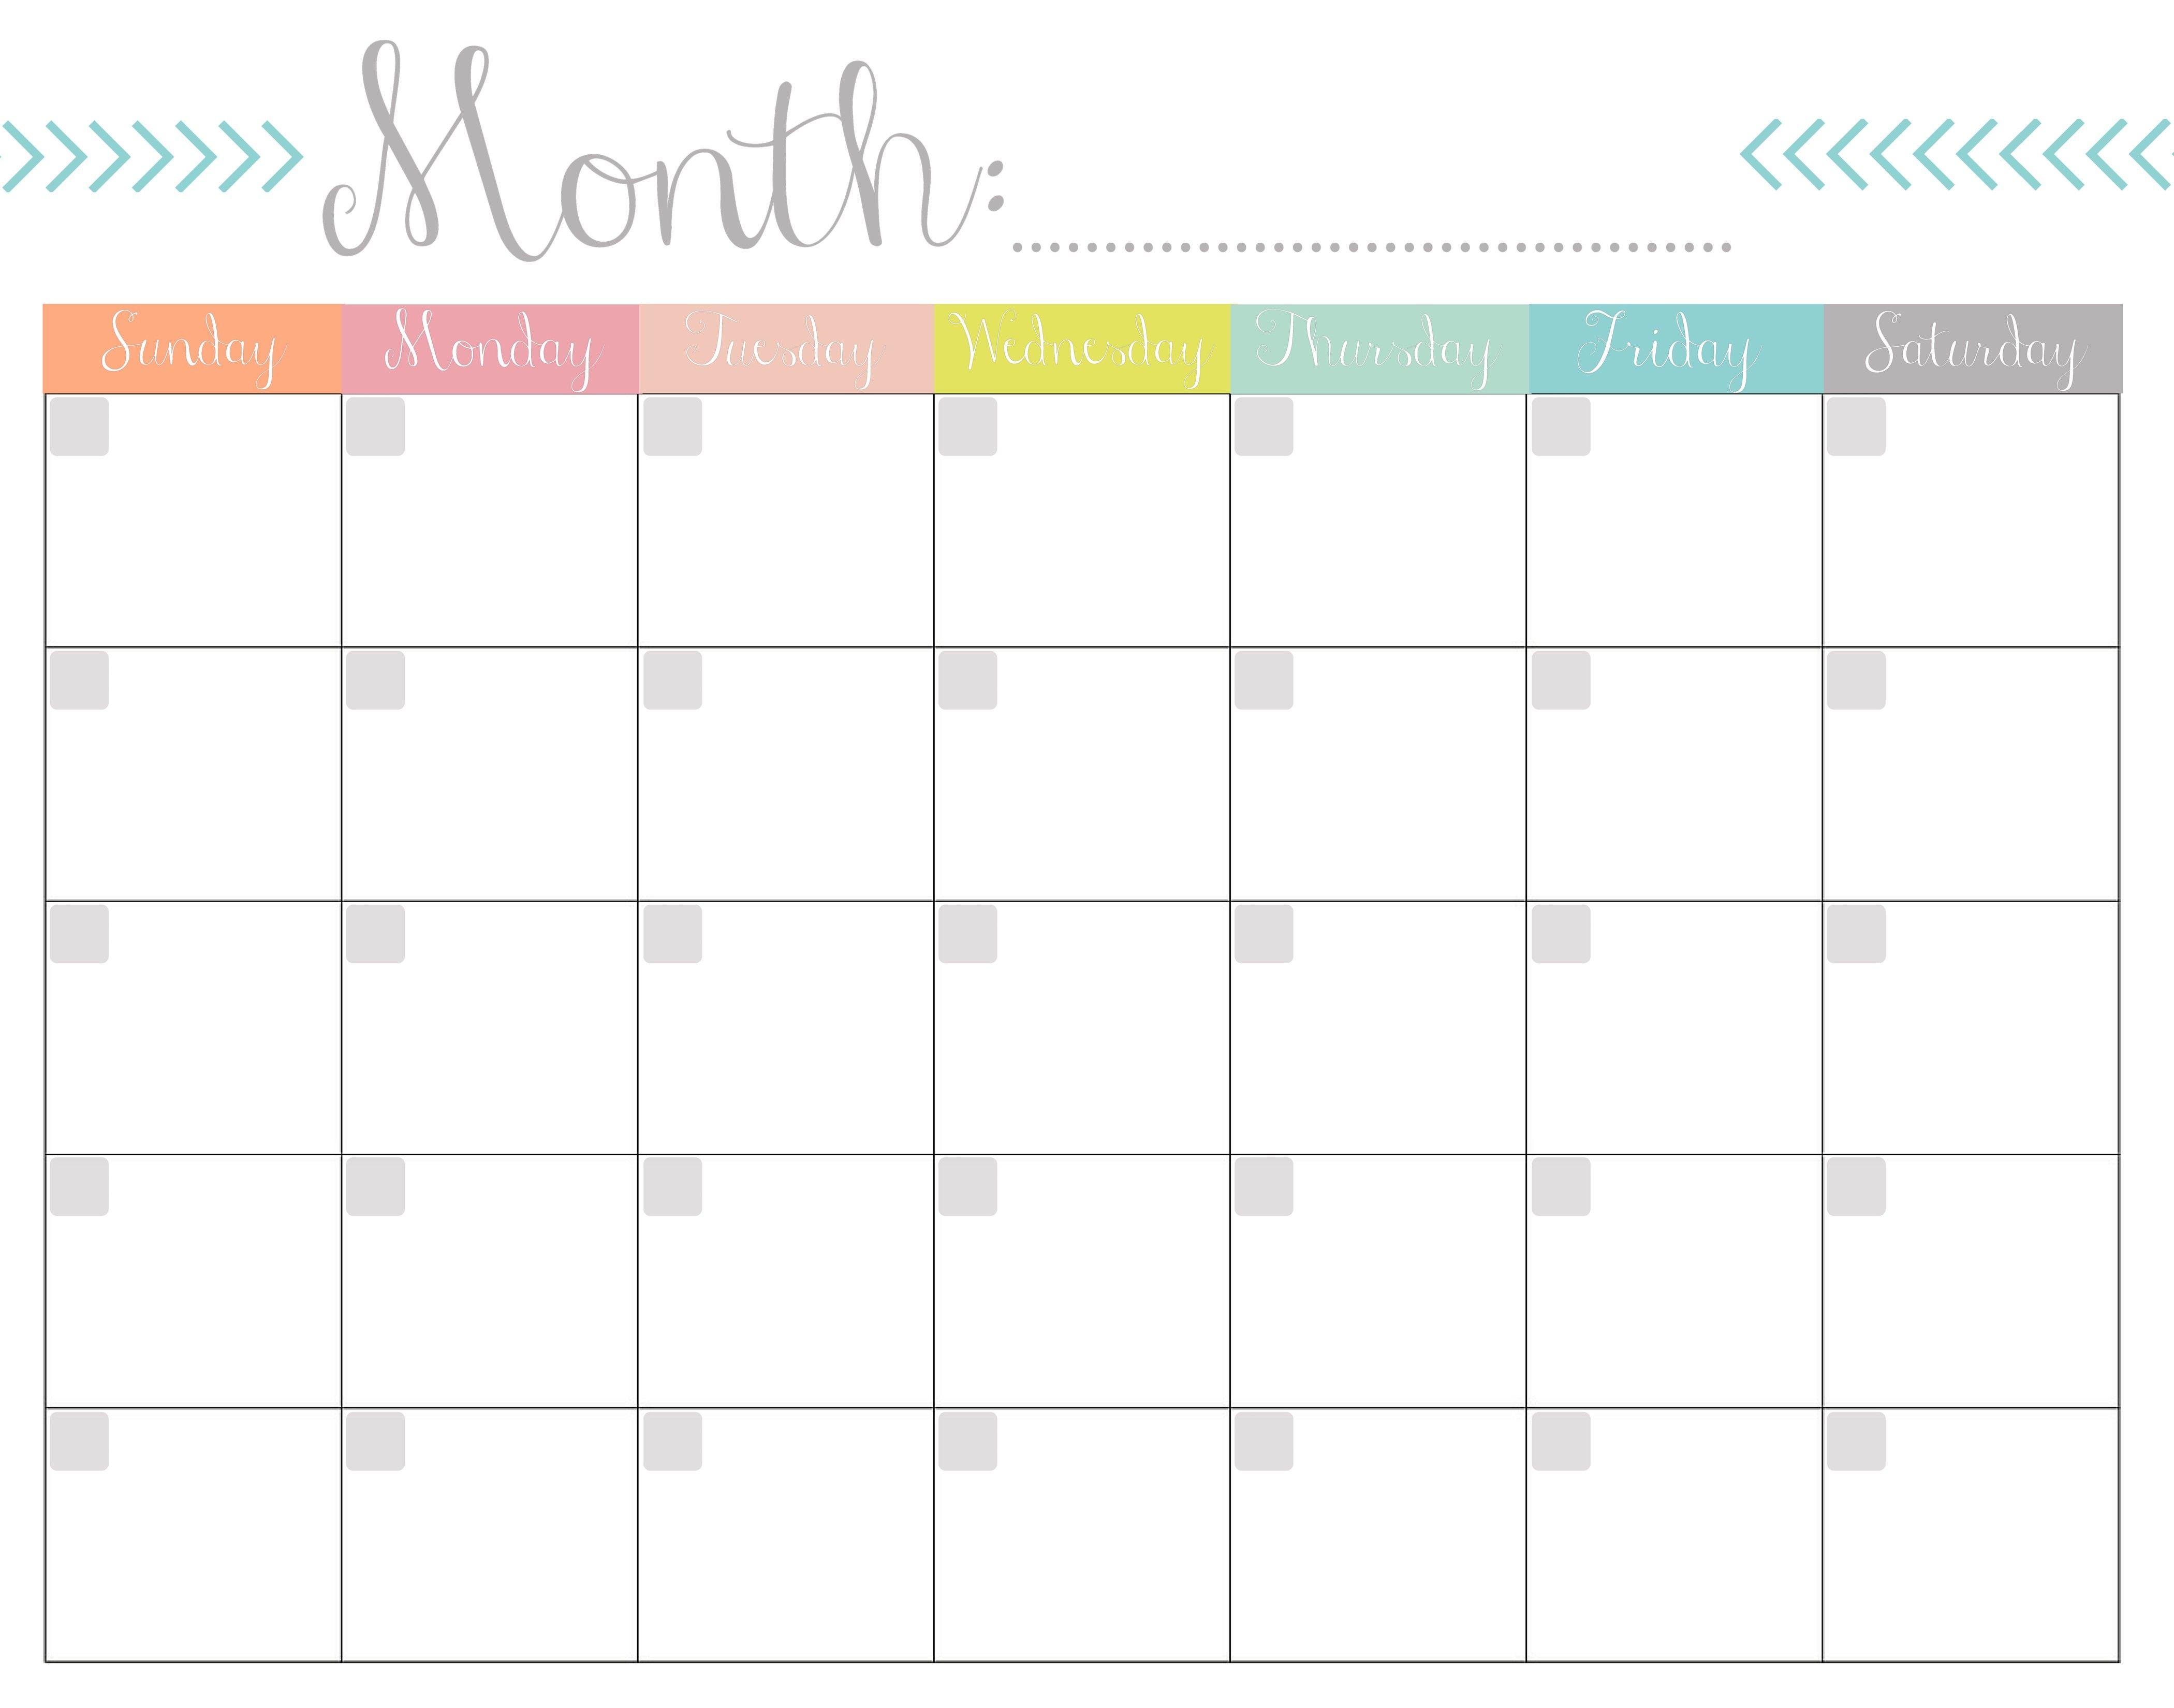 013 Blank Monthly Calendar Template Free Printable Templates intended for Blank Monthly Calender